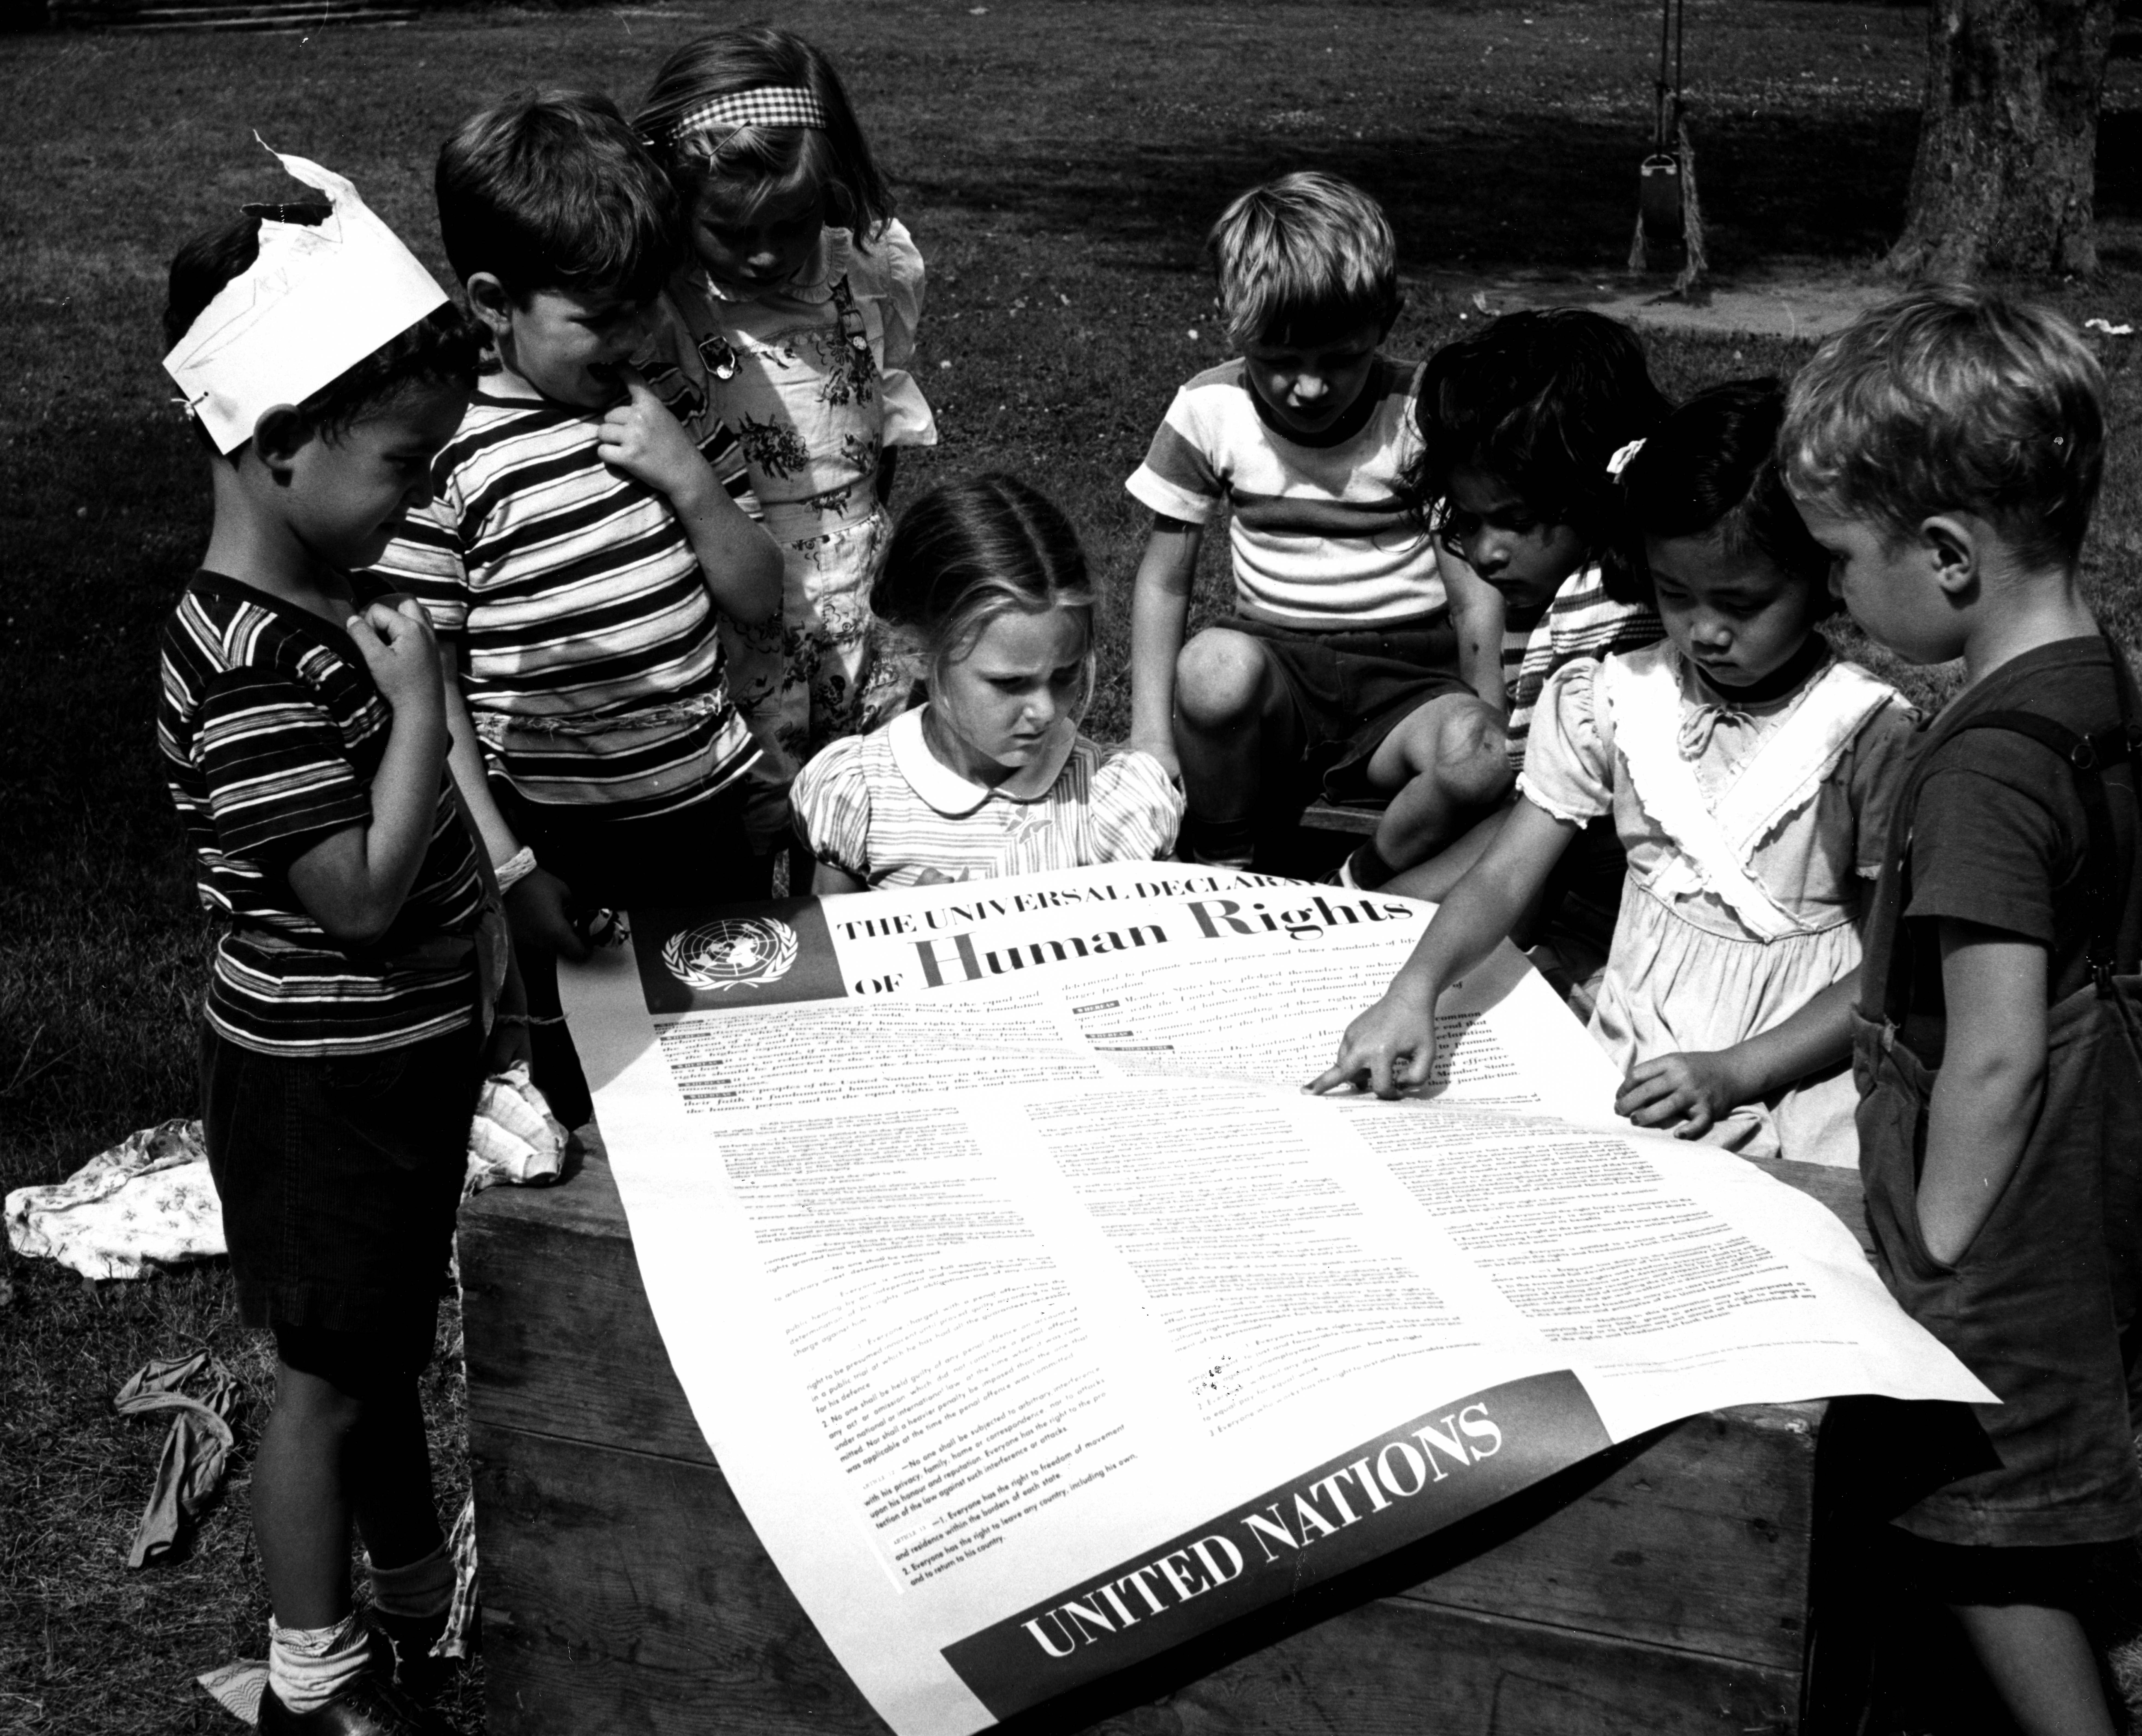 A group of school children sit outside, gathered around a large poster printed with the UN's Universal Declaration of Human Rights.